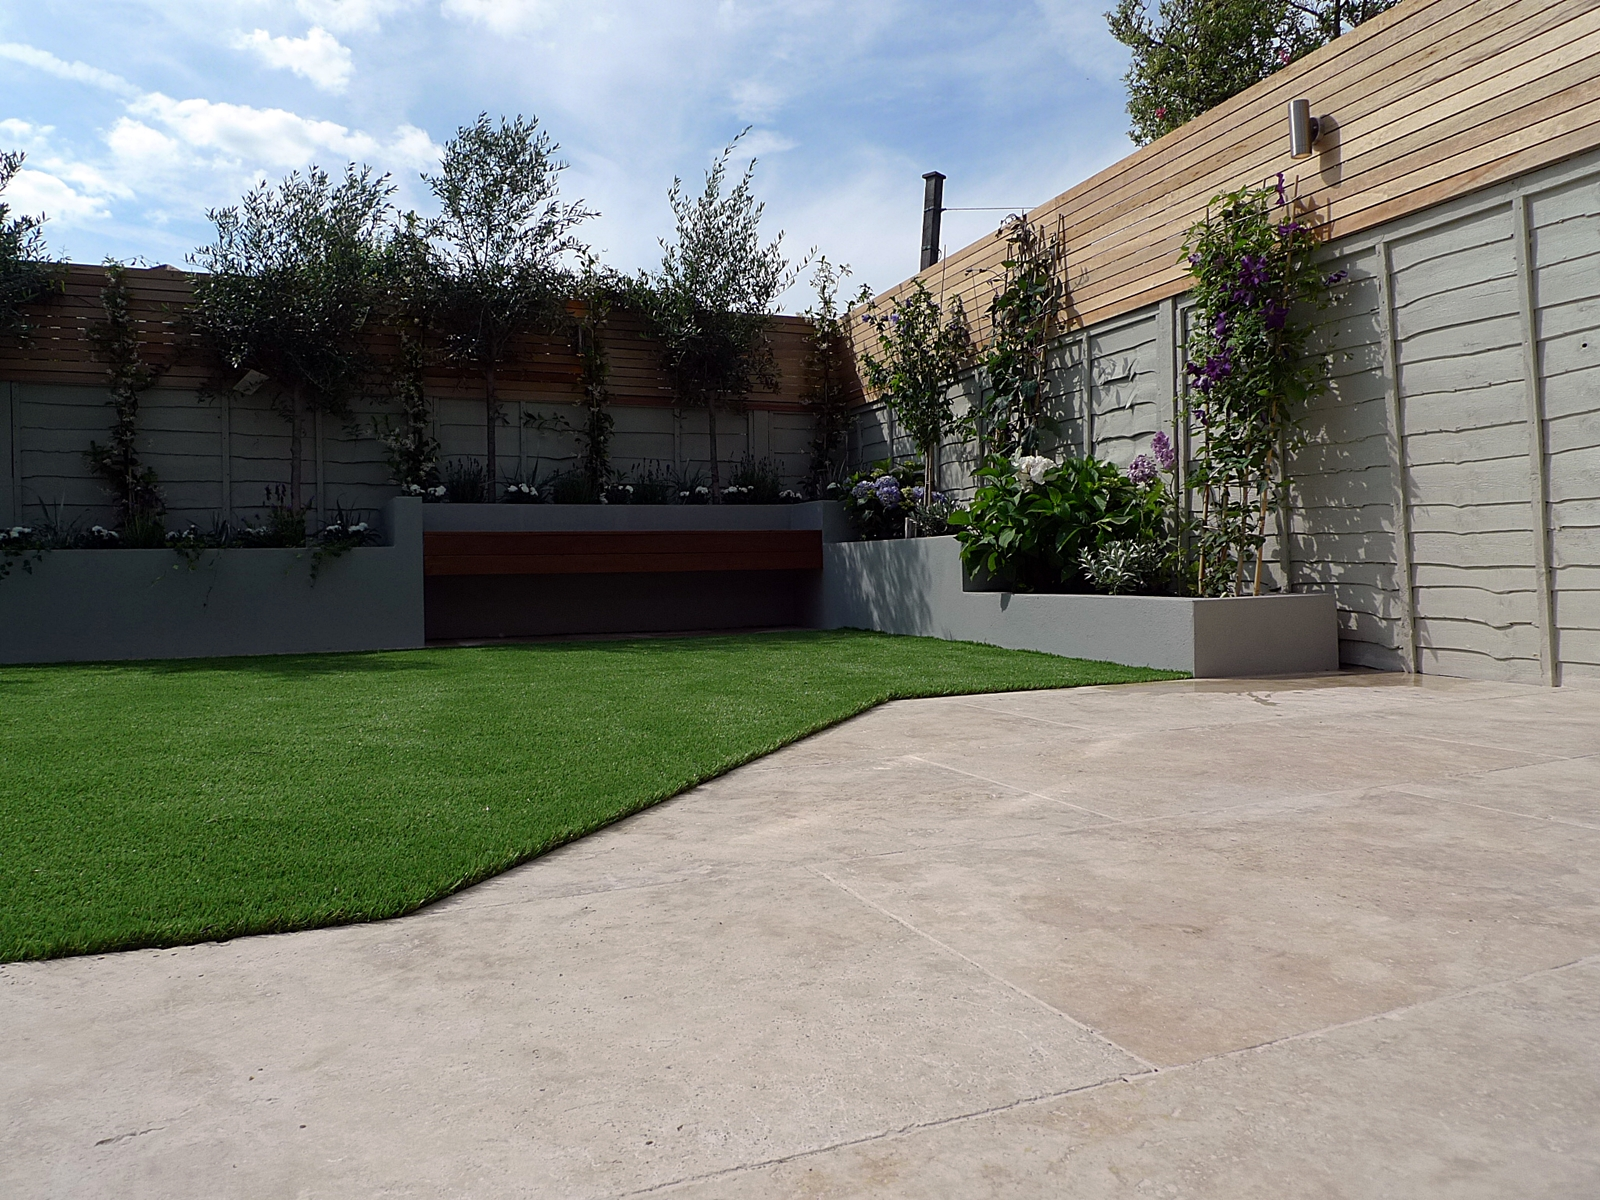 travertine-patio-paving-terrace-fake-easi-grass-floating-hardwood-bench-cedar-screen-trellis-fence-raised-beds-in-grey-dulwich-clapham-balham-battersea-fulham-chelsea-london.jpg